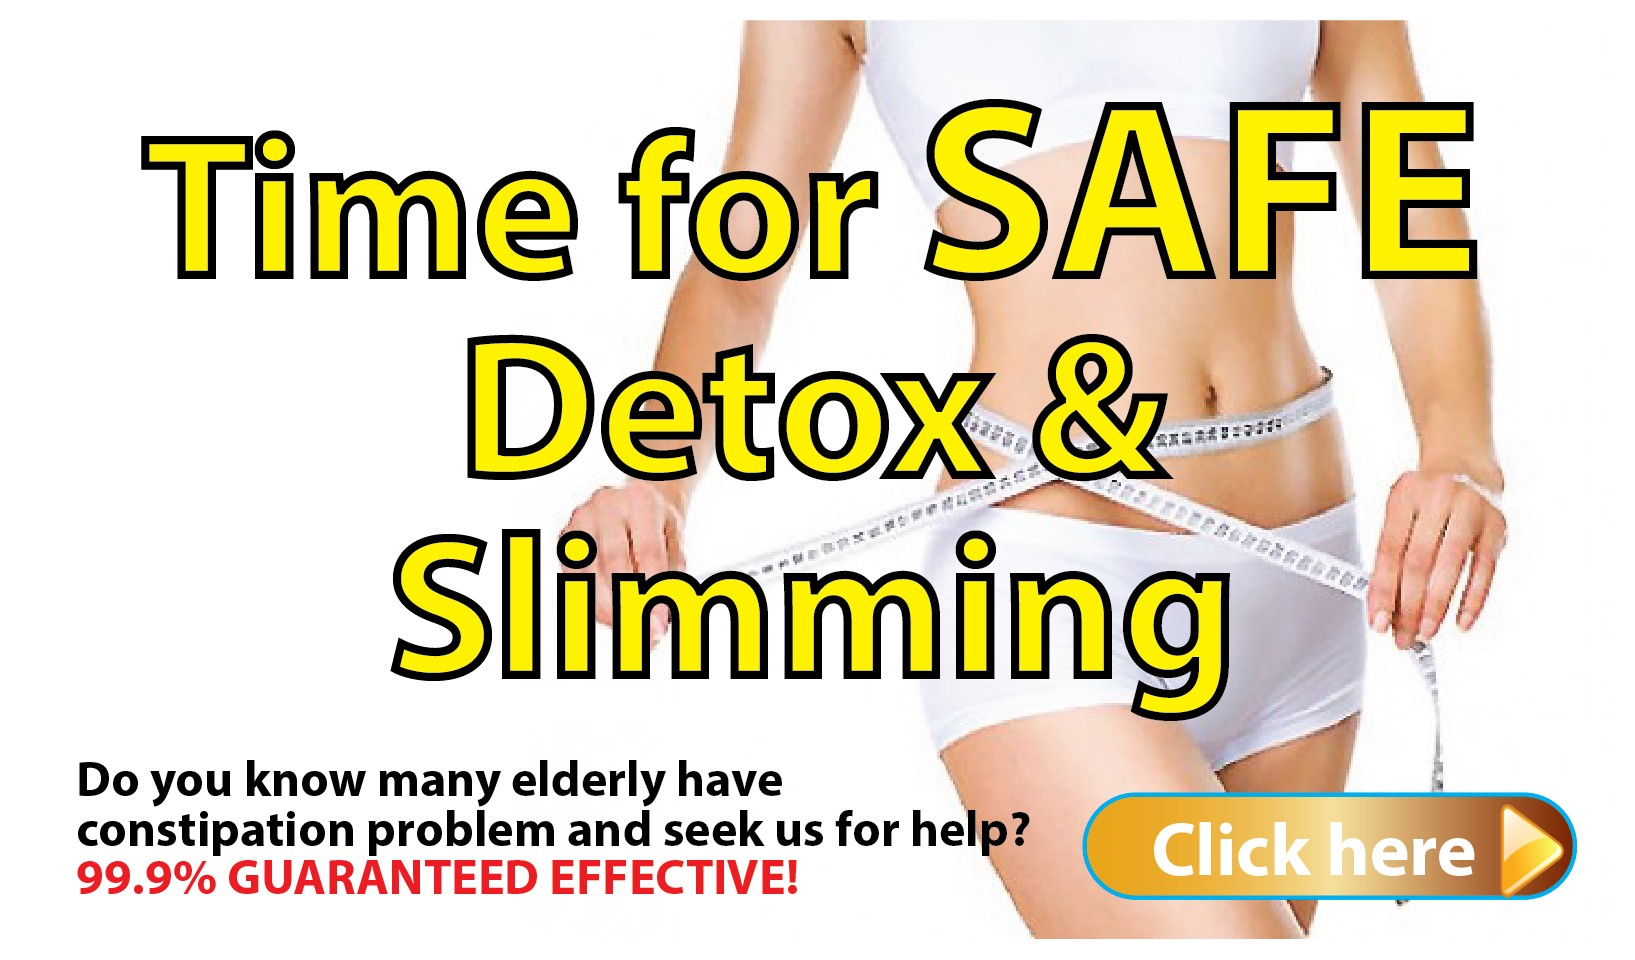 Slimming and Detox